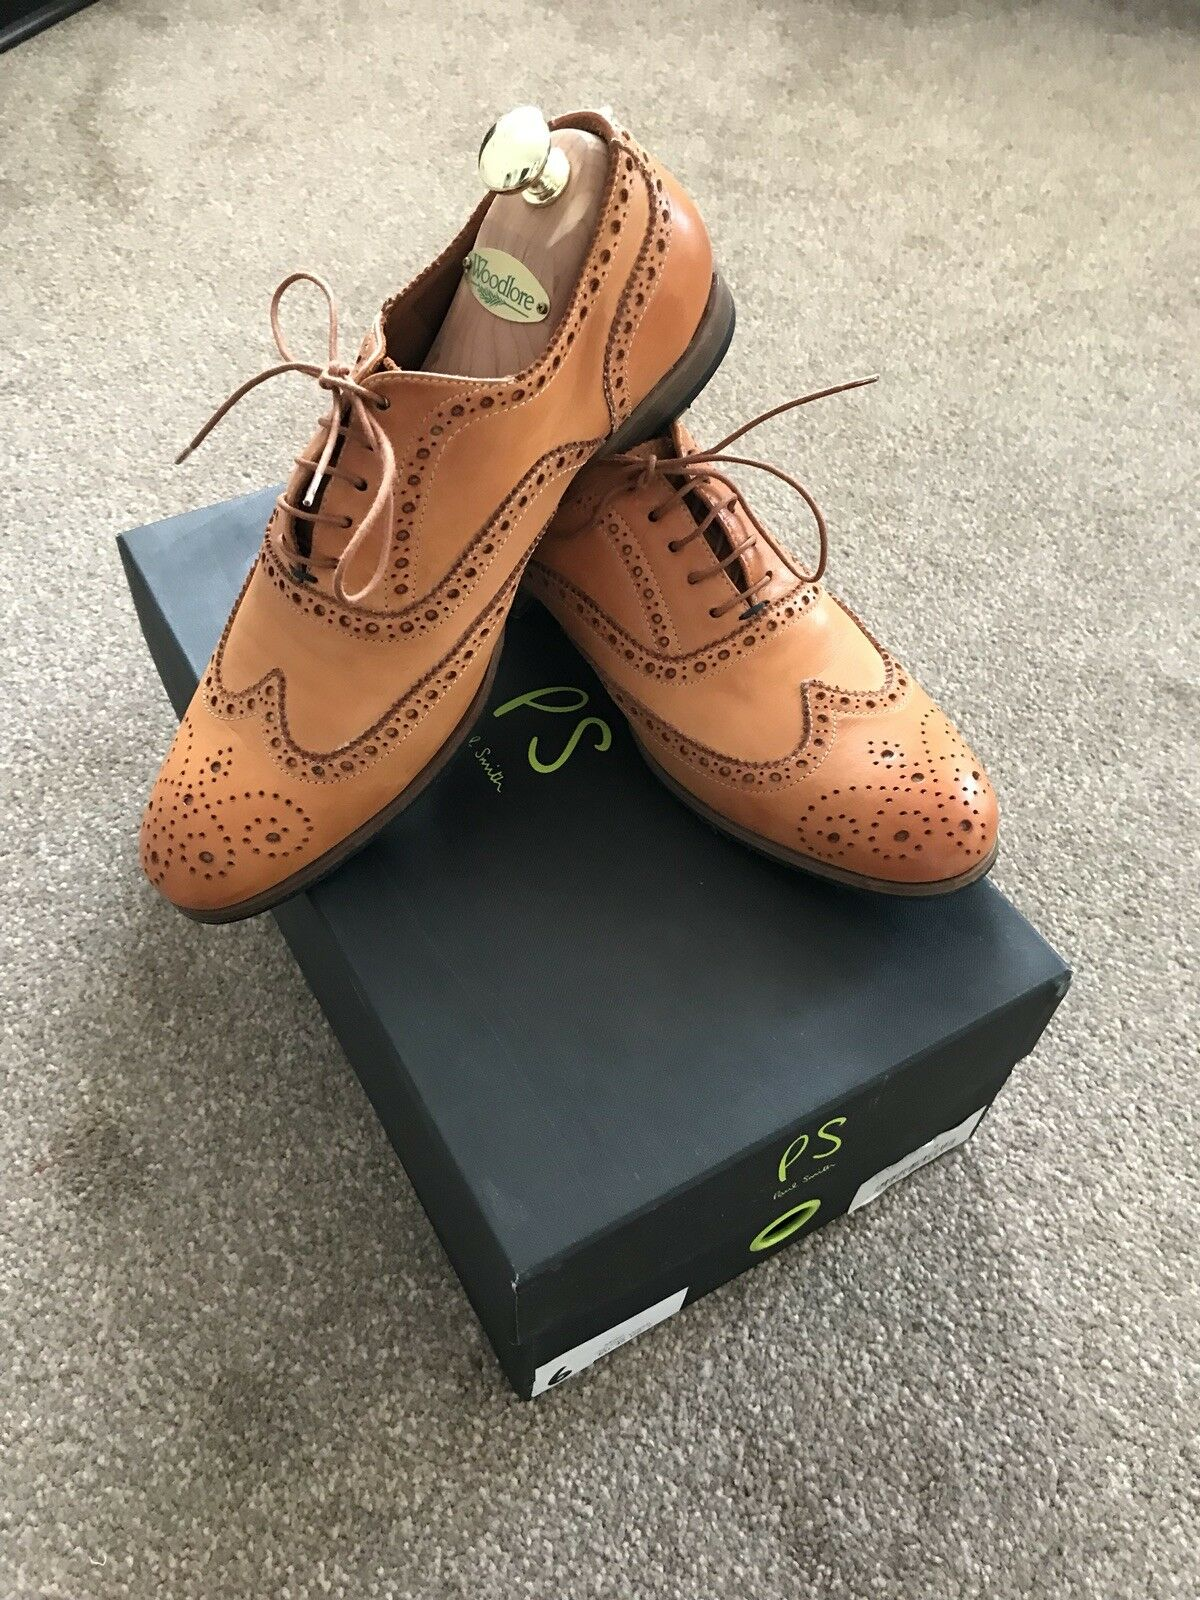 Paul Smith Brogues Size 6